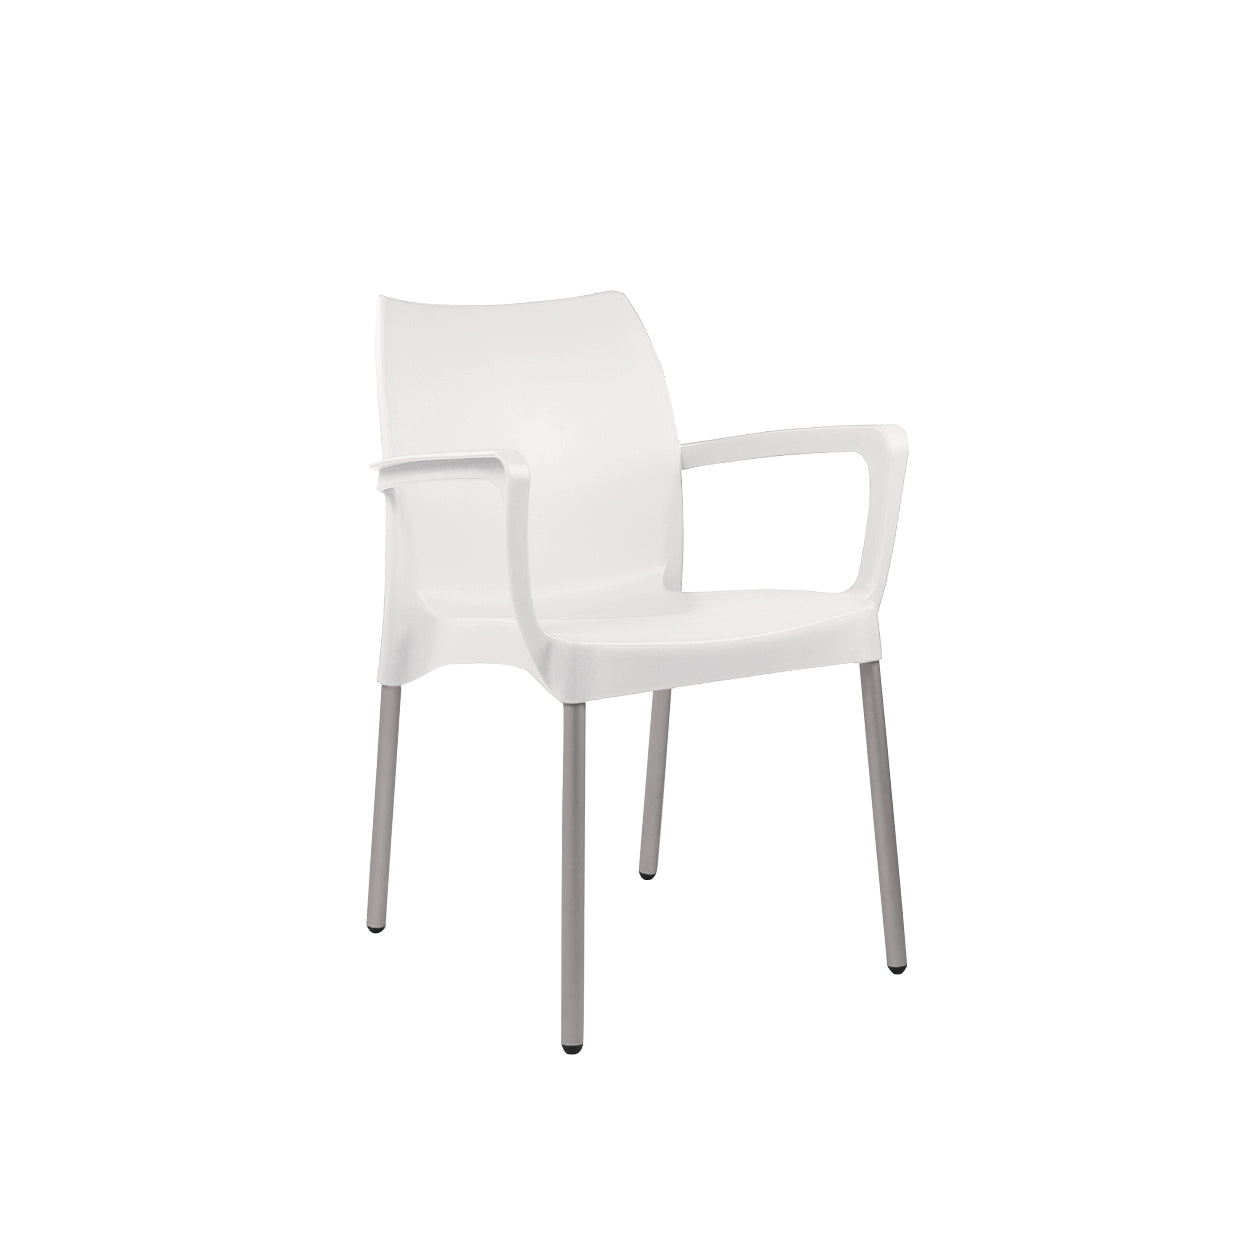 Hedcor Sage with arms plastic chair